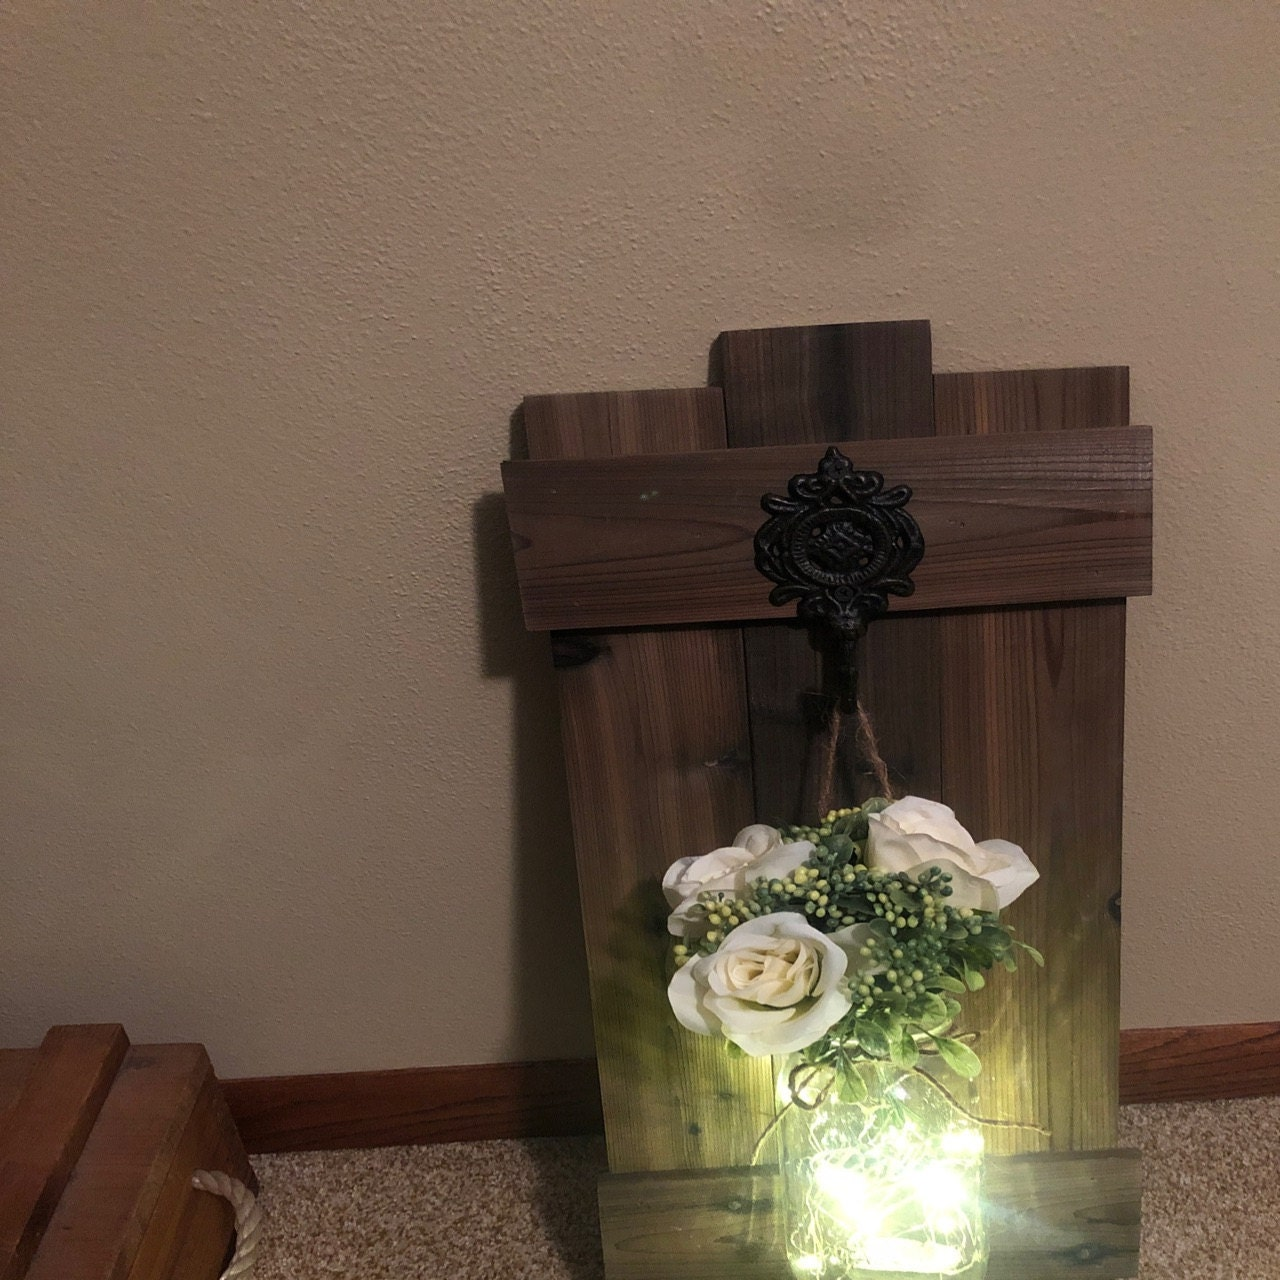 shelby graham added a photo of their purchase